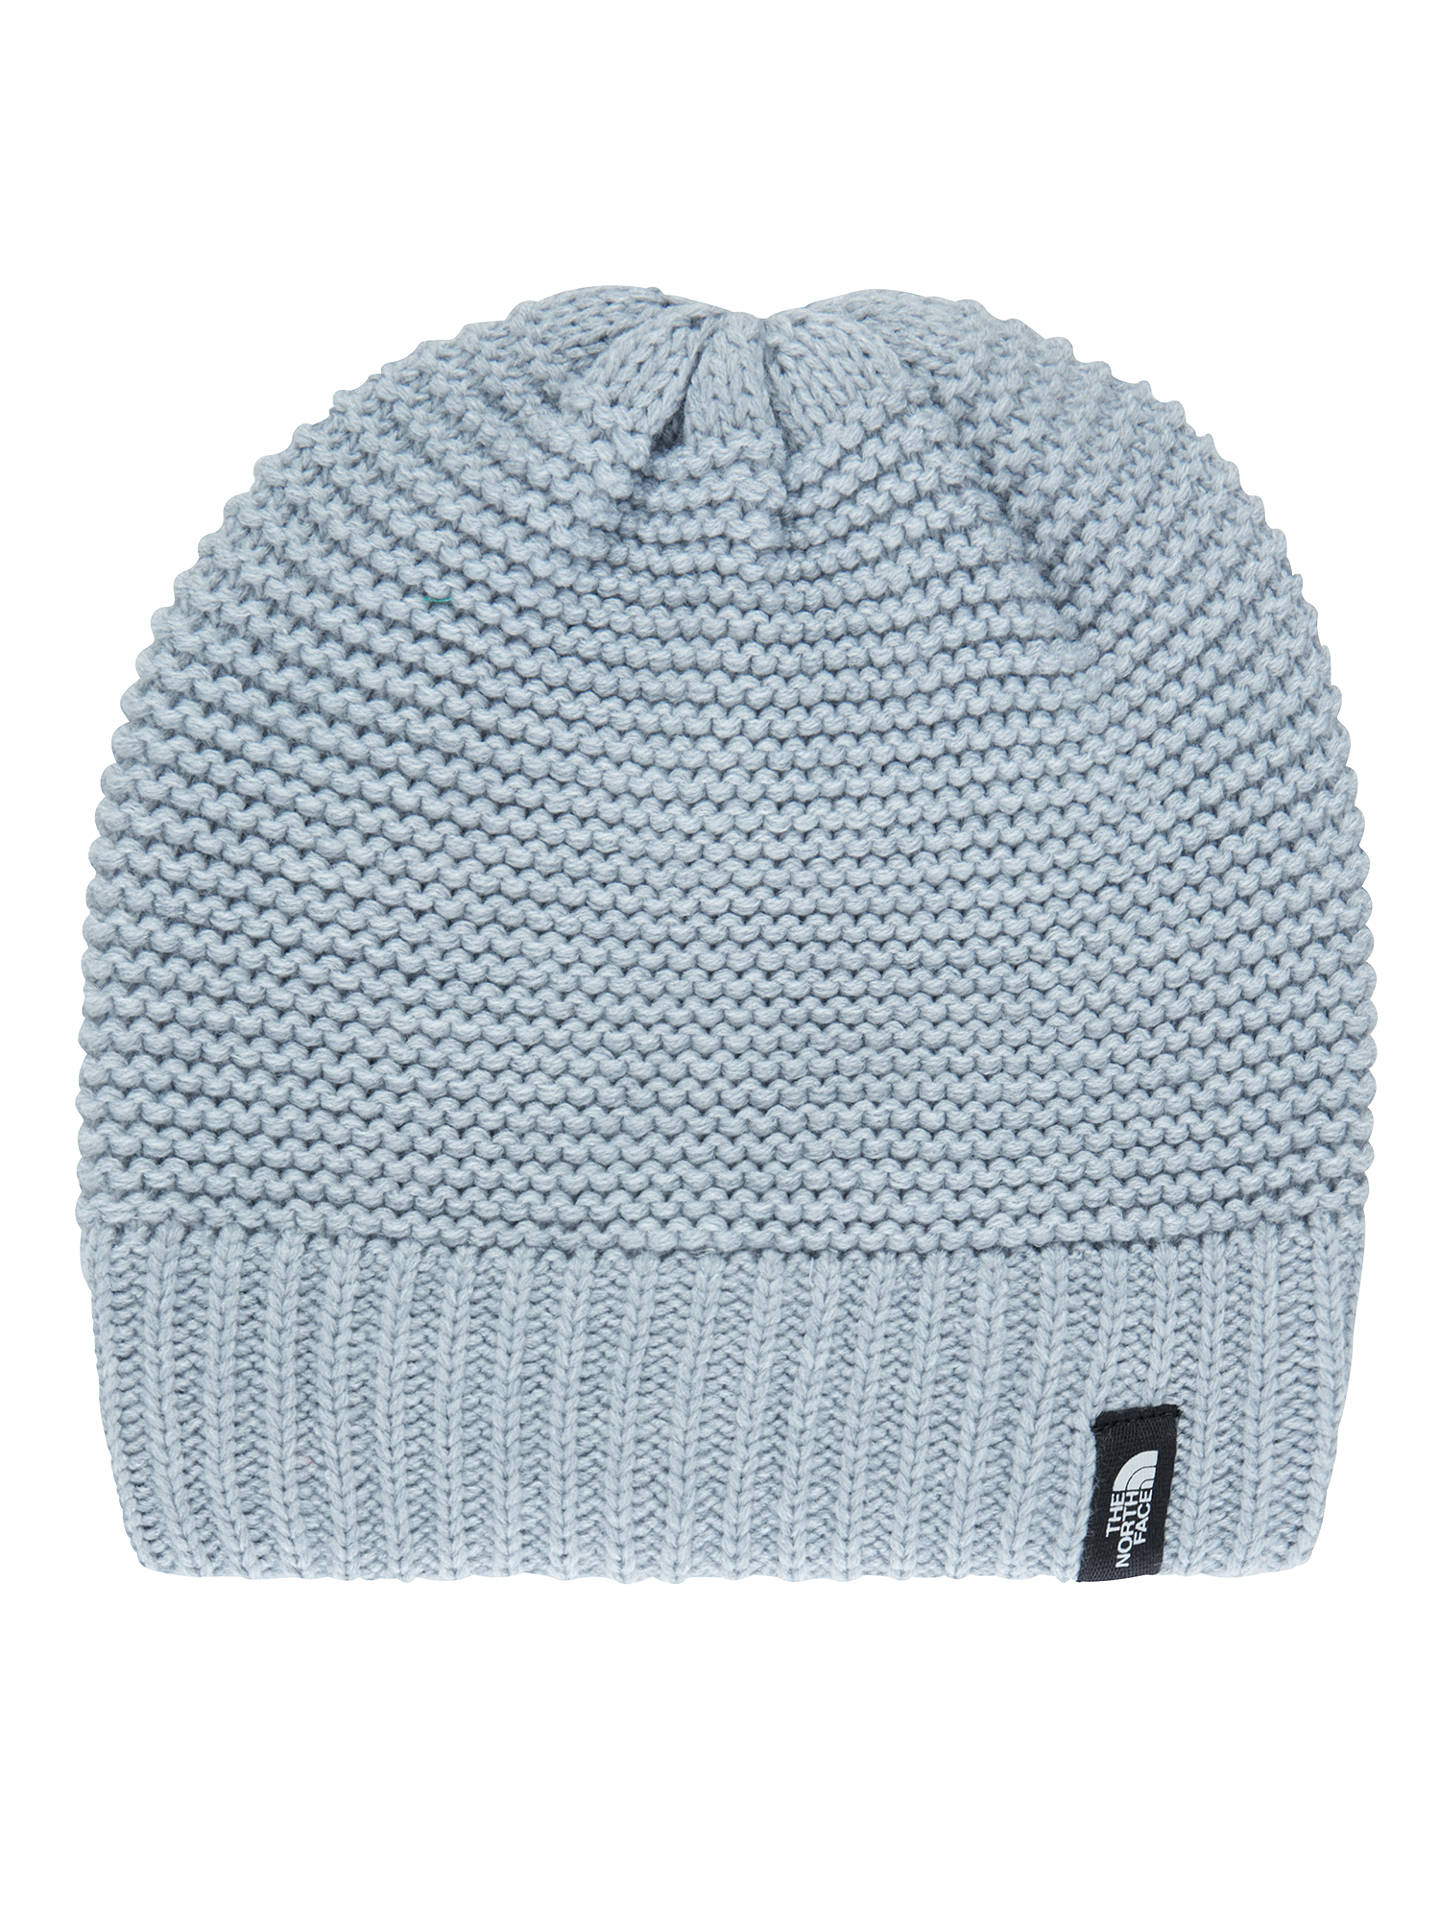 2a5e397211 Buy The North Face Purrl Stitch Beanie